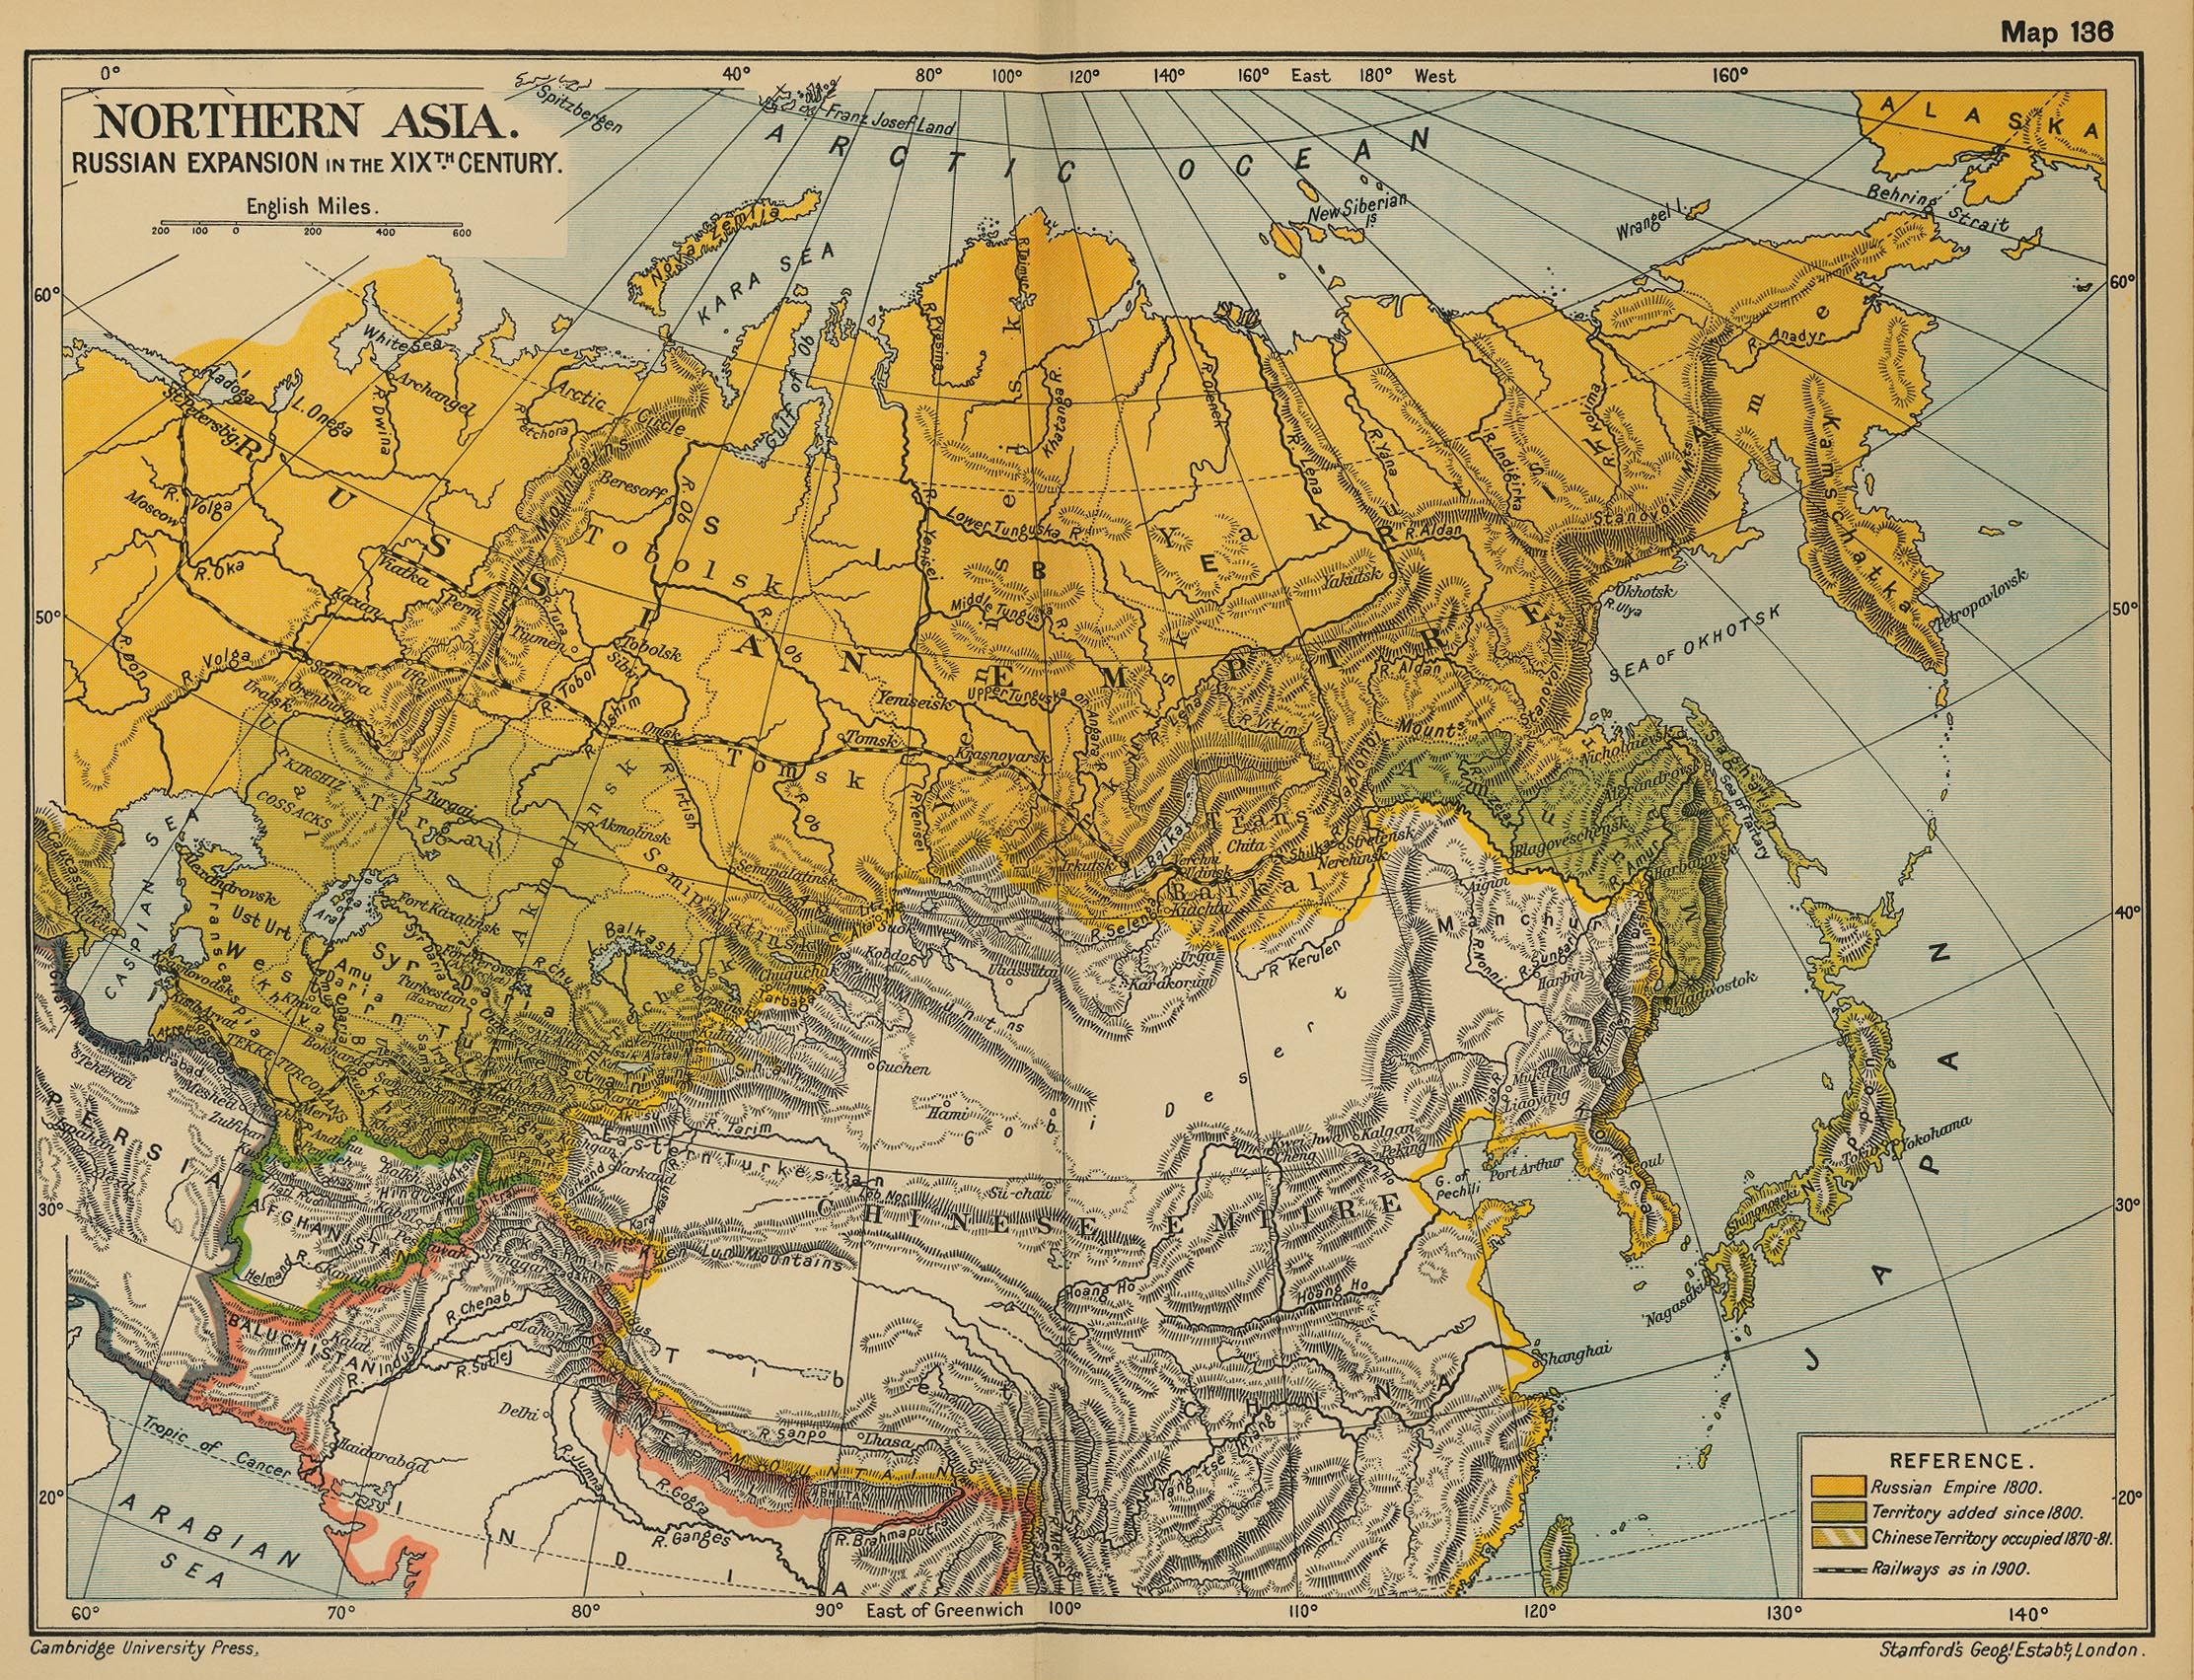 Northern Asia in the 19th Century Map